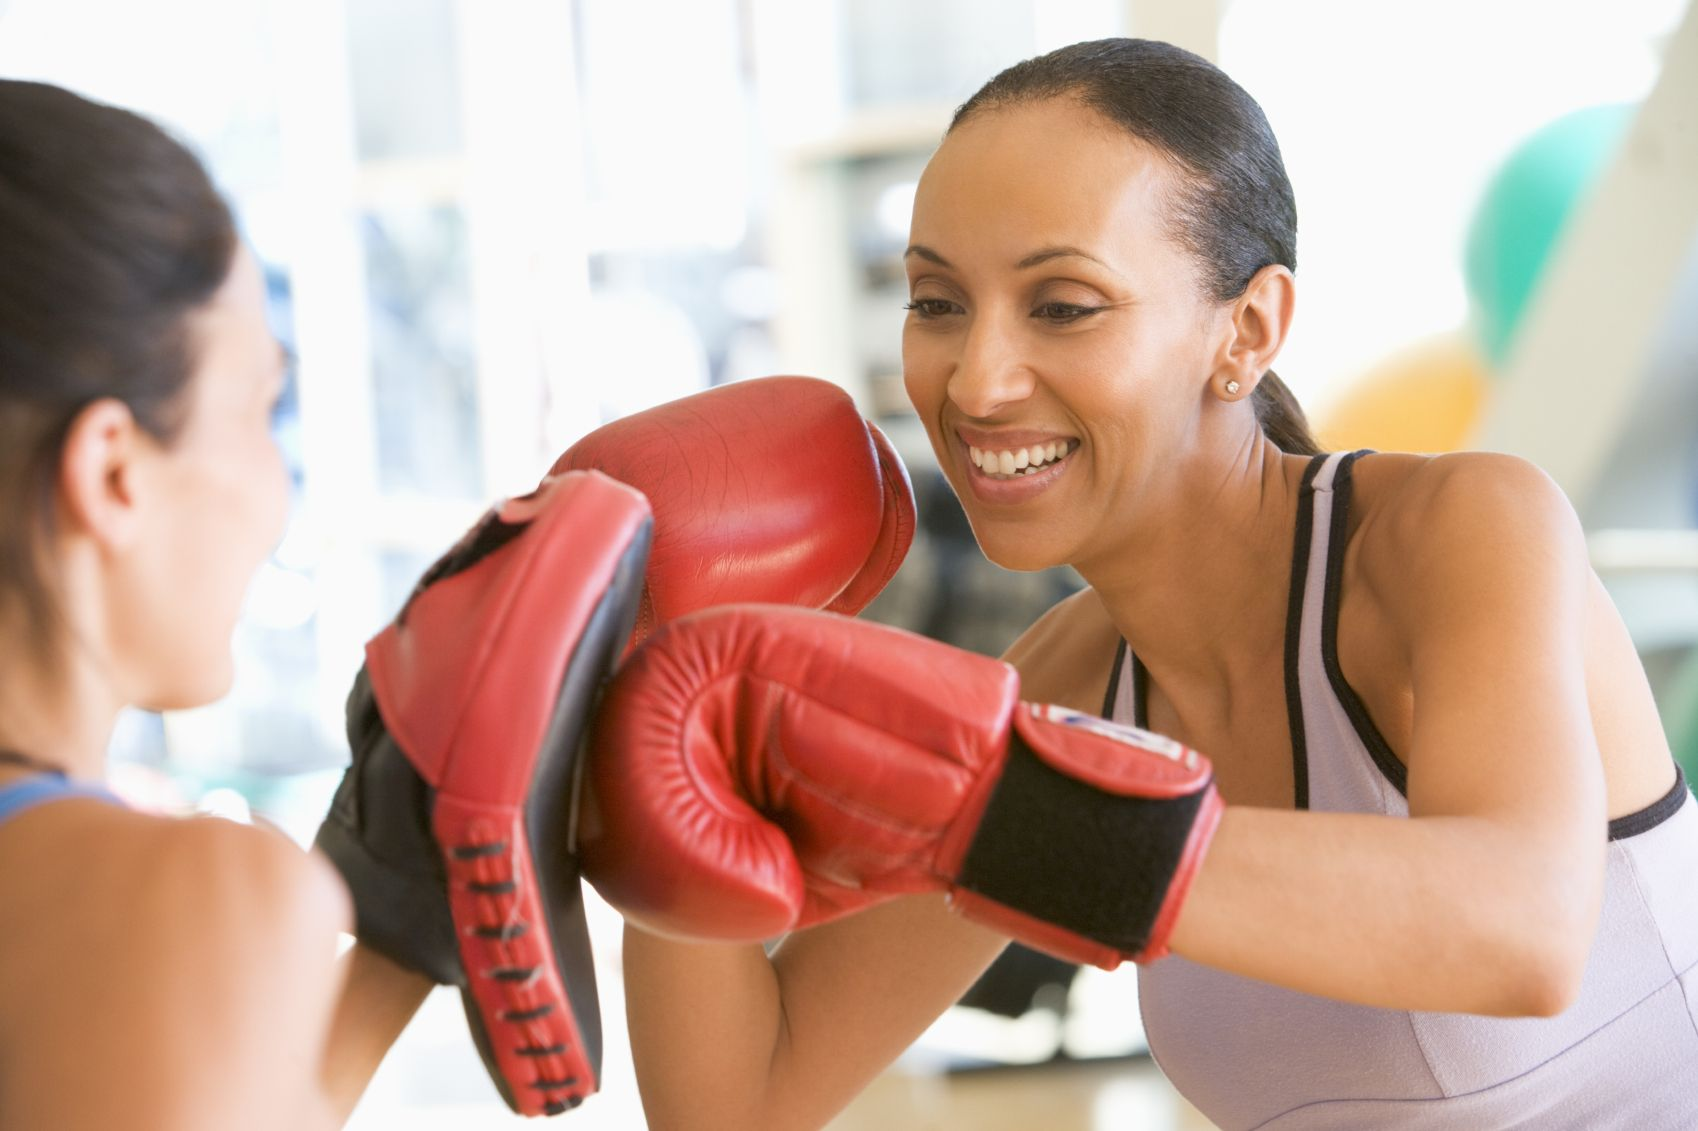 Kickboxing Classes Fitness Advice Boxing Workout Boxercise